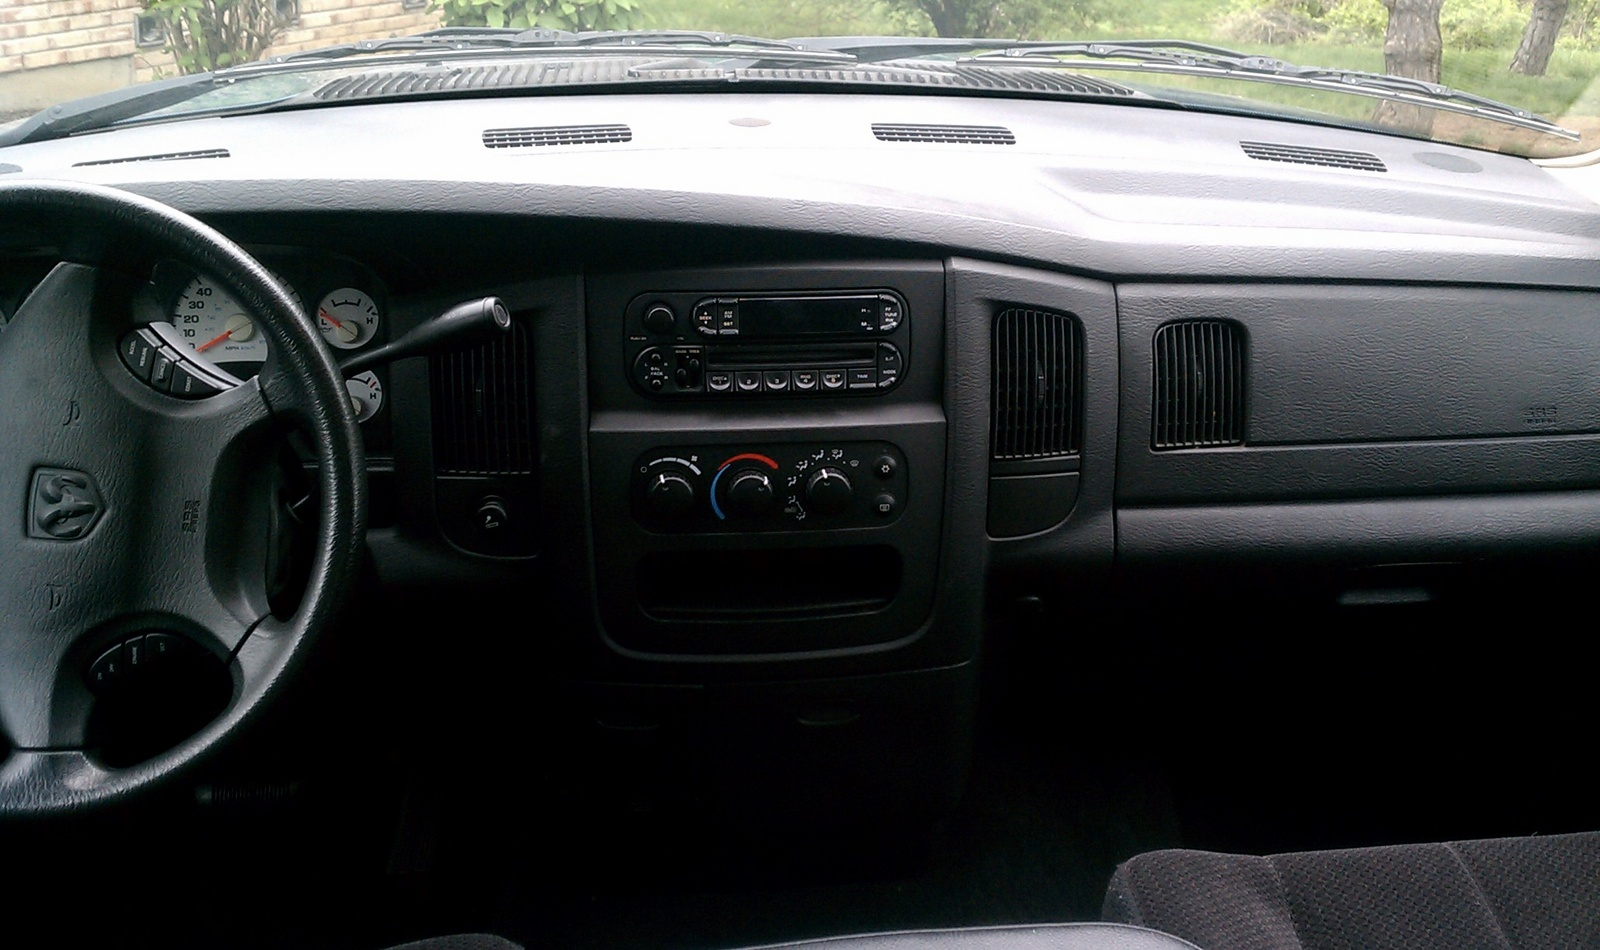 2003 Dodge Ram Pickup 1500 Interior Pictures Cargurus